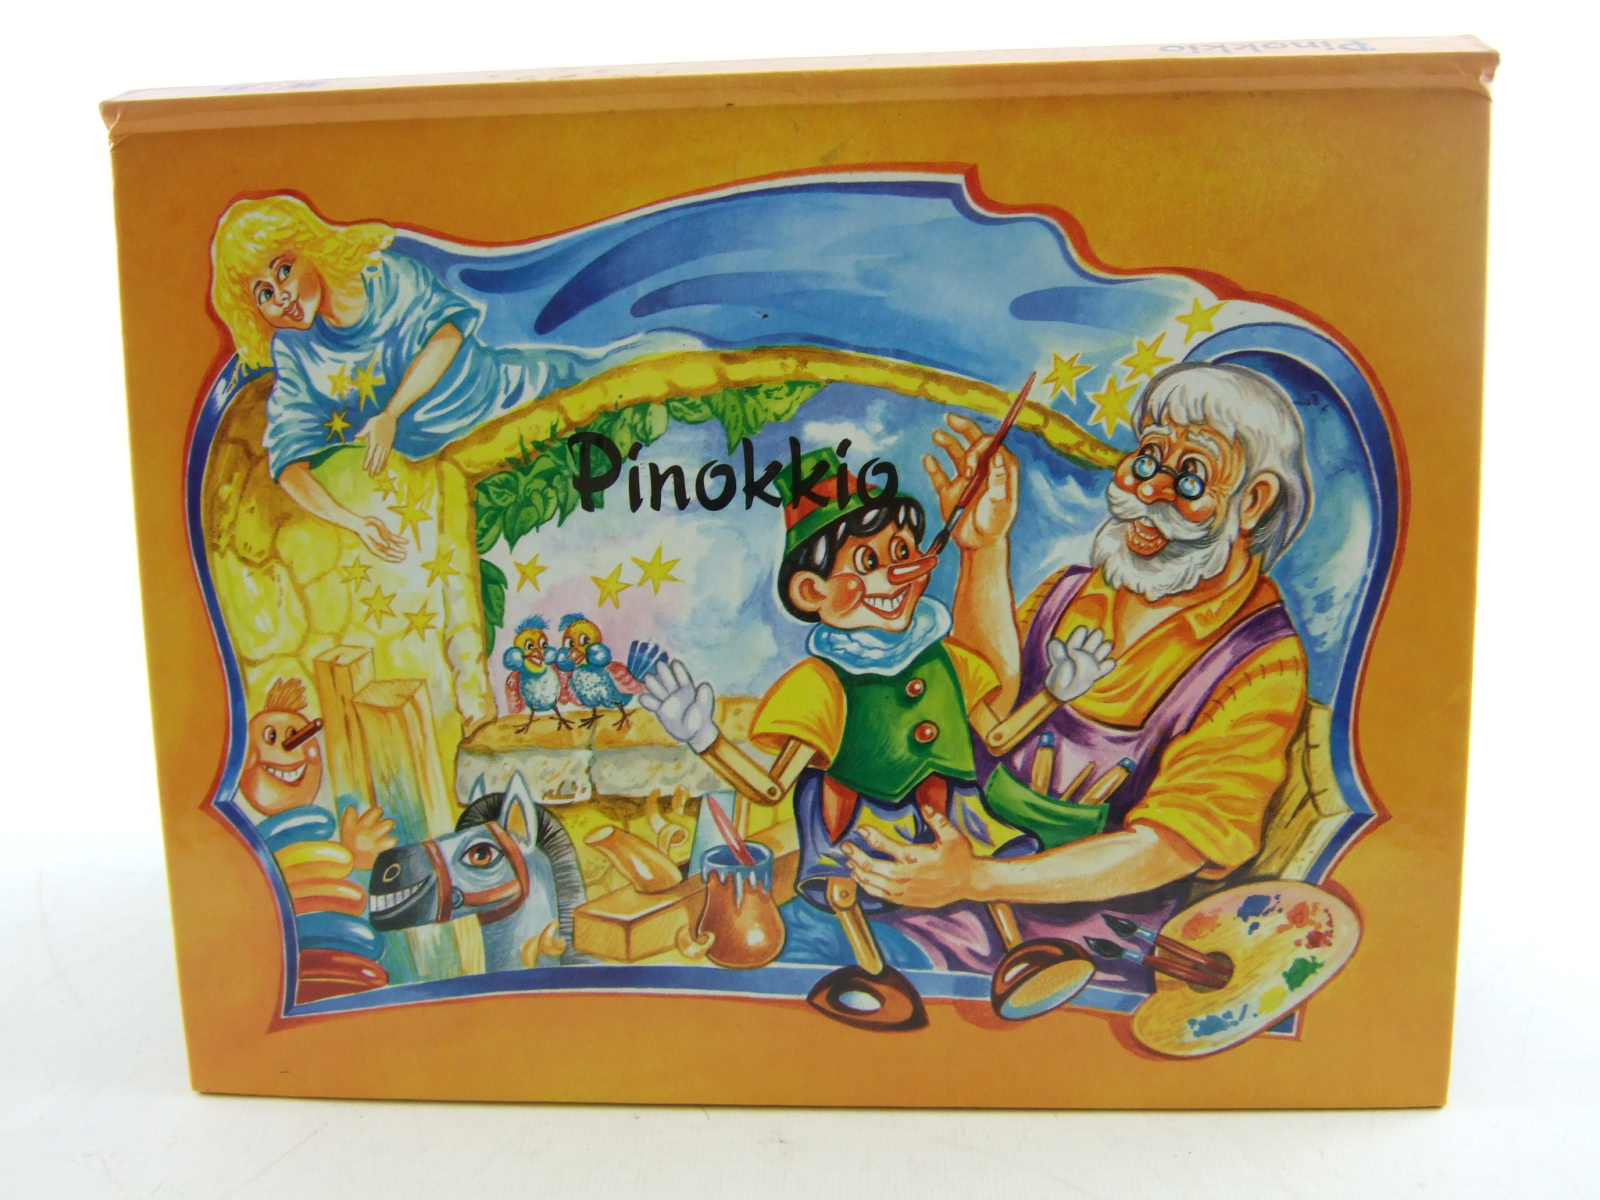 Photo of PINOKKIO published by R&b (STOCK CODE: 2001057)  for sale by Stella & Rose's Books